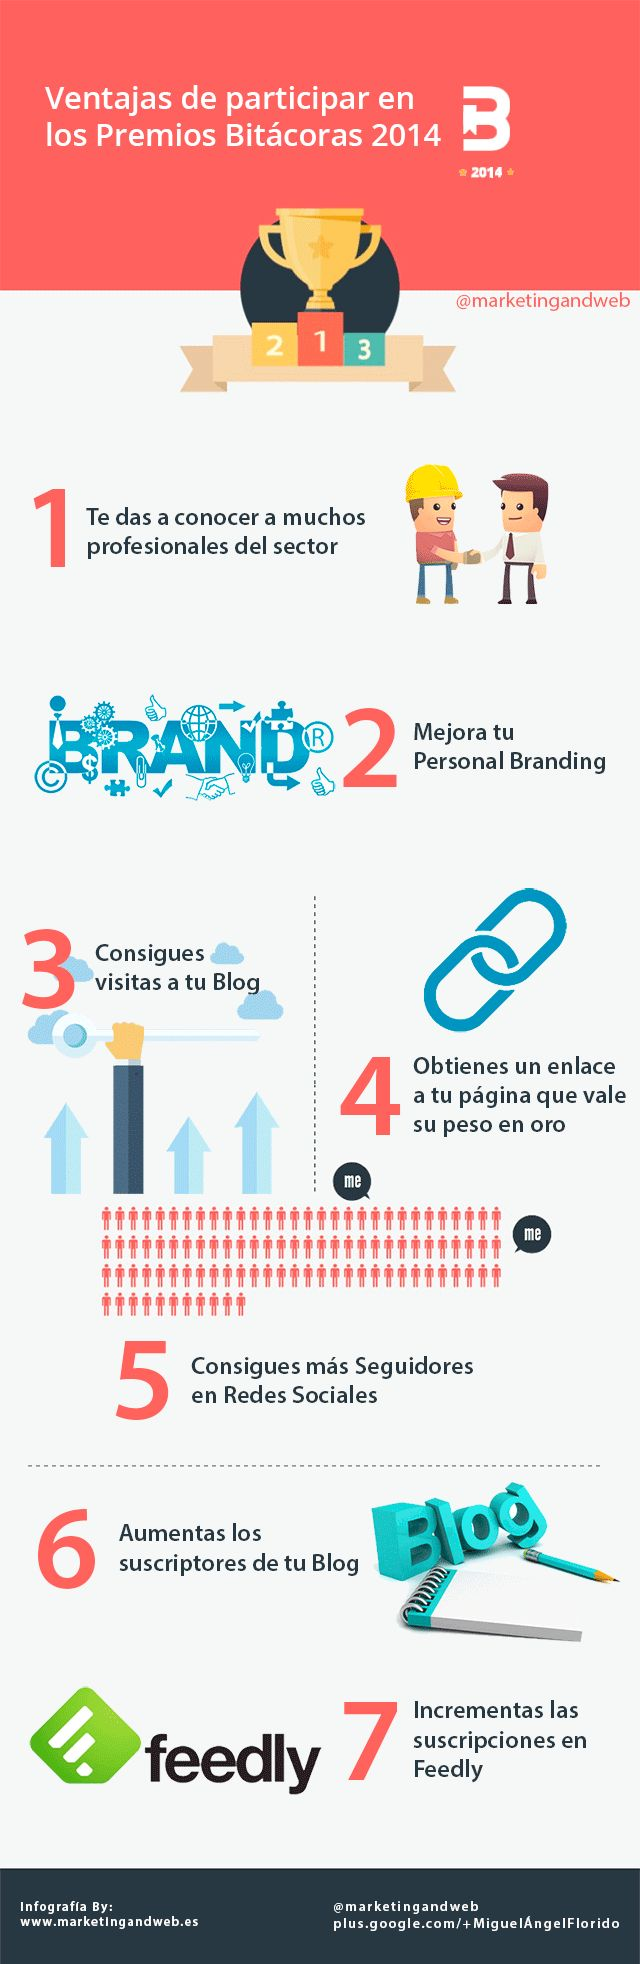 #Infografia #Marketing Participa en los premios bitácoras 2014. #TAVnews